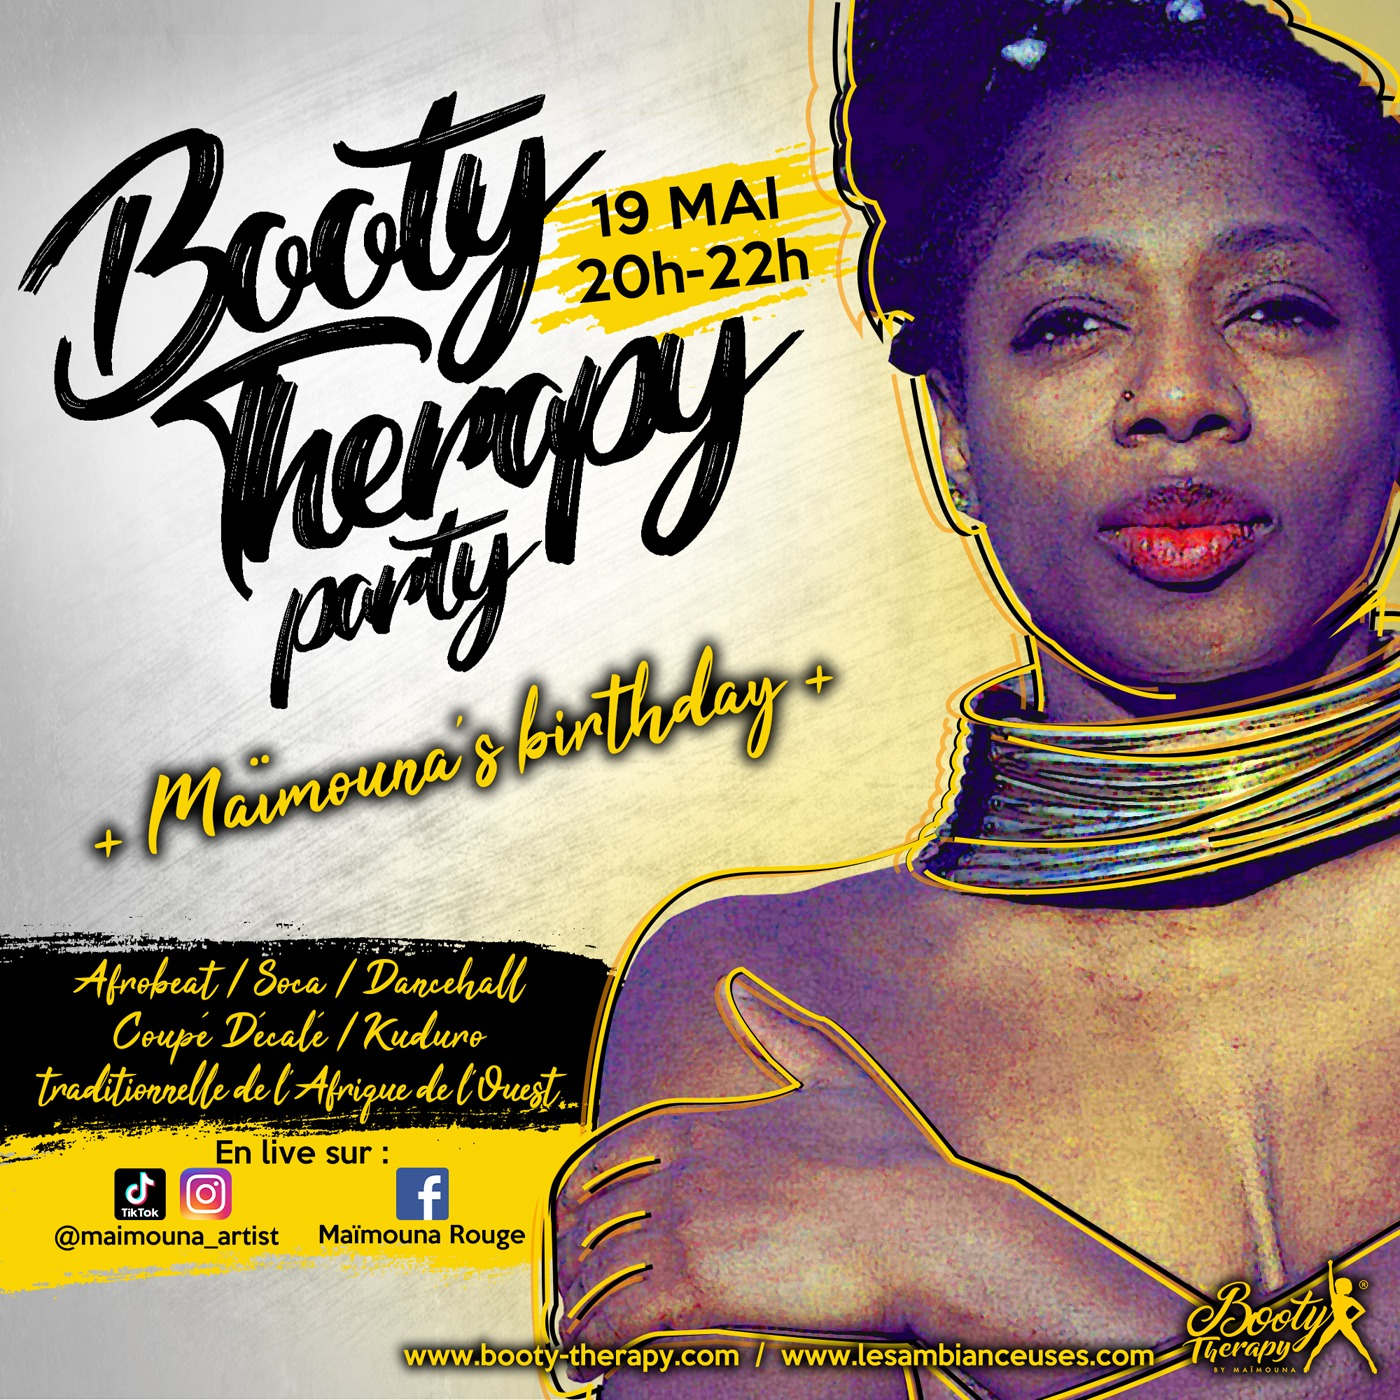 Booty Therapy Party 19 mai 2020 visuel carré